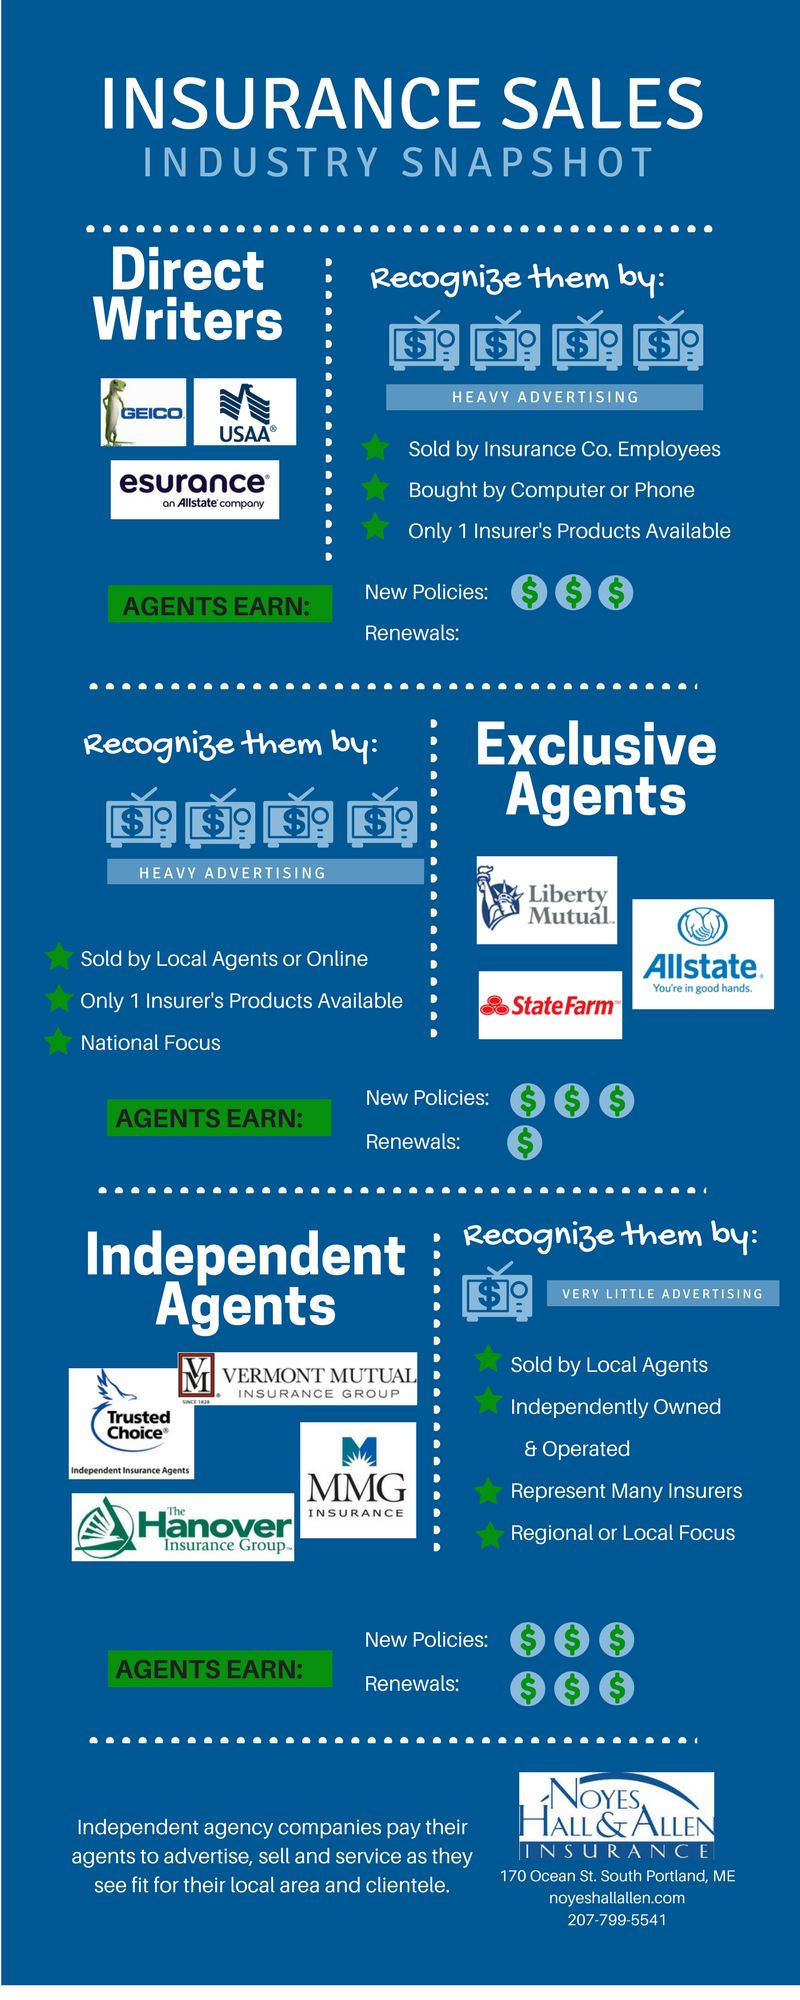 Top Property And Casualty Insurance Companies